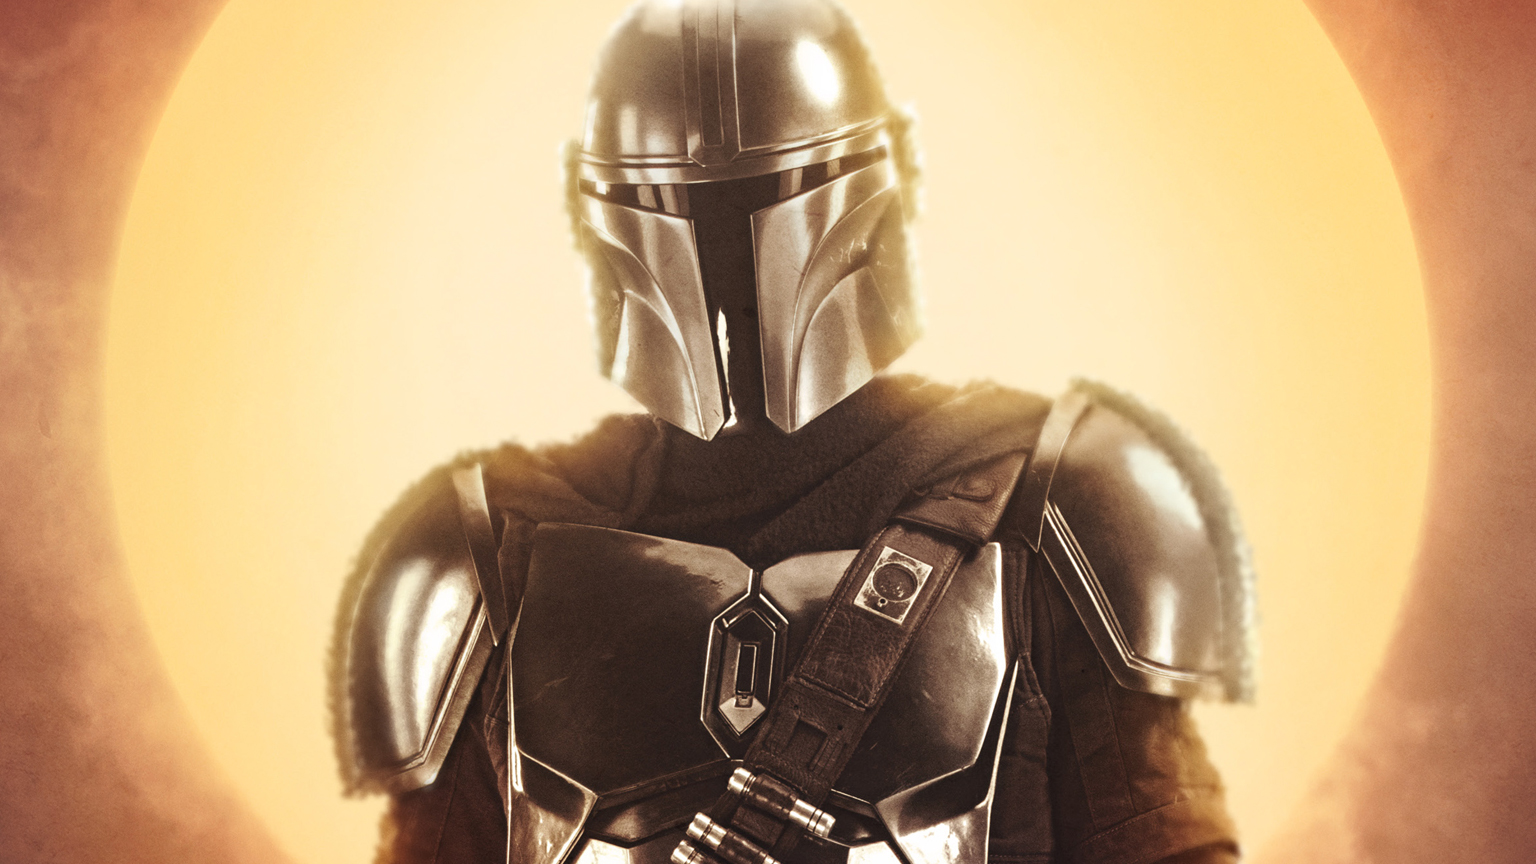 A character poster for The Mandalorian featuring The Mandalorian.